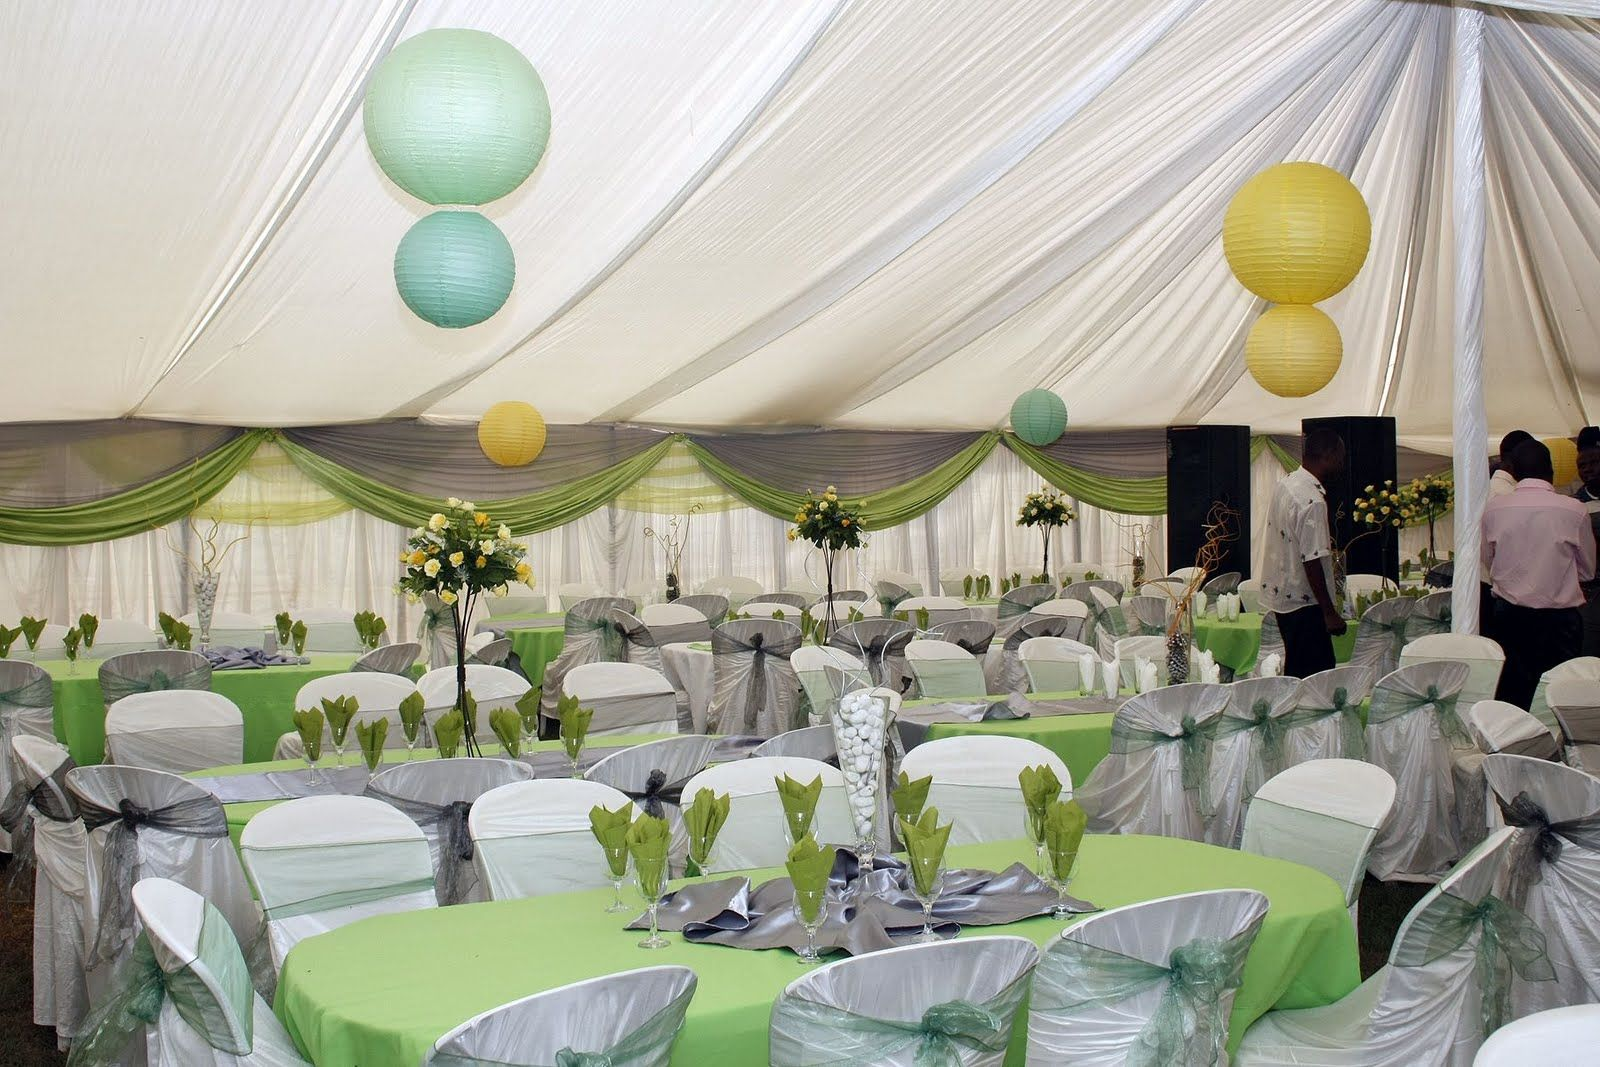 Garden wedding reception decoration ideas how to make for Wedding banquet decorations